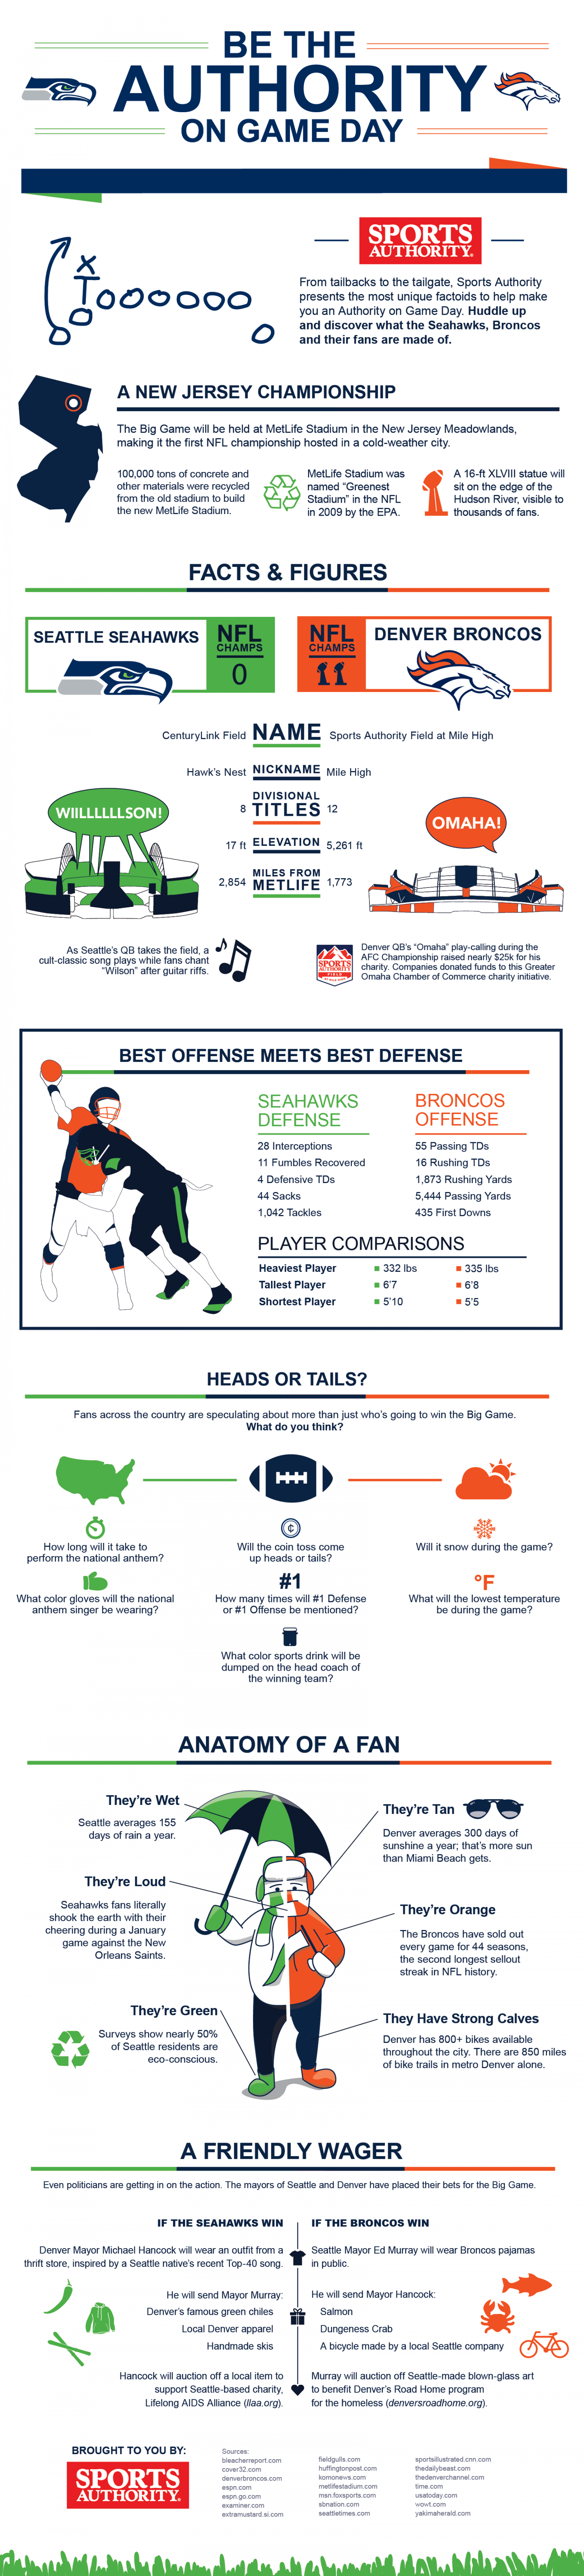 Be The Authority On Game Day Infographic